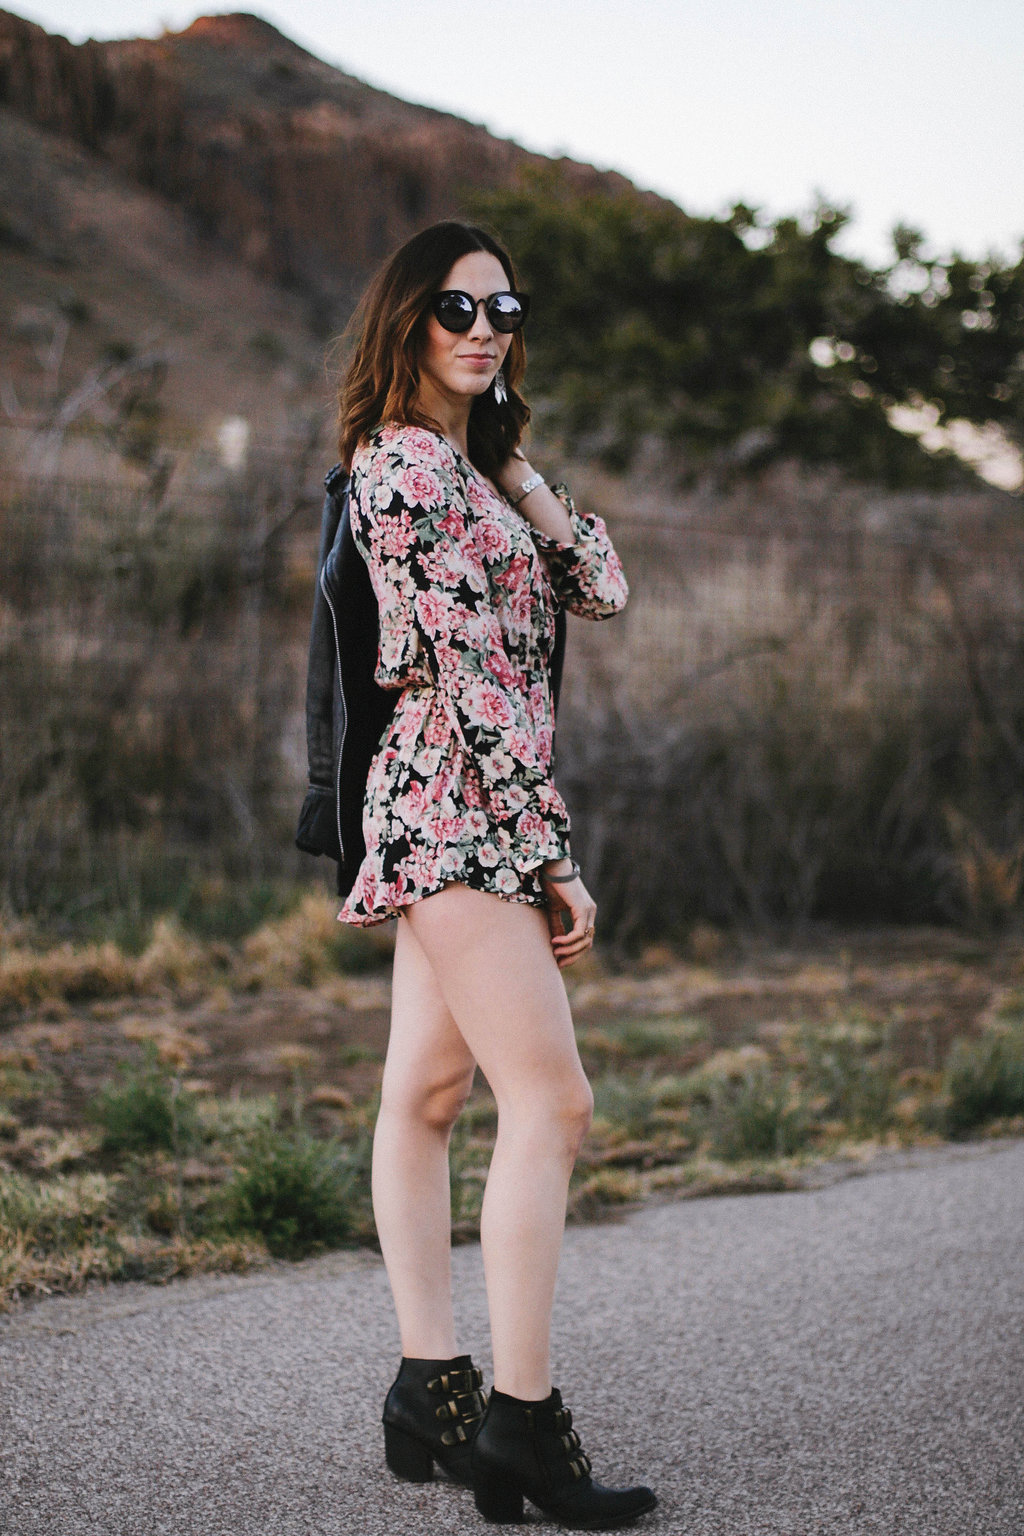 wearing: happy endings floral romper